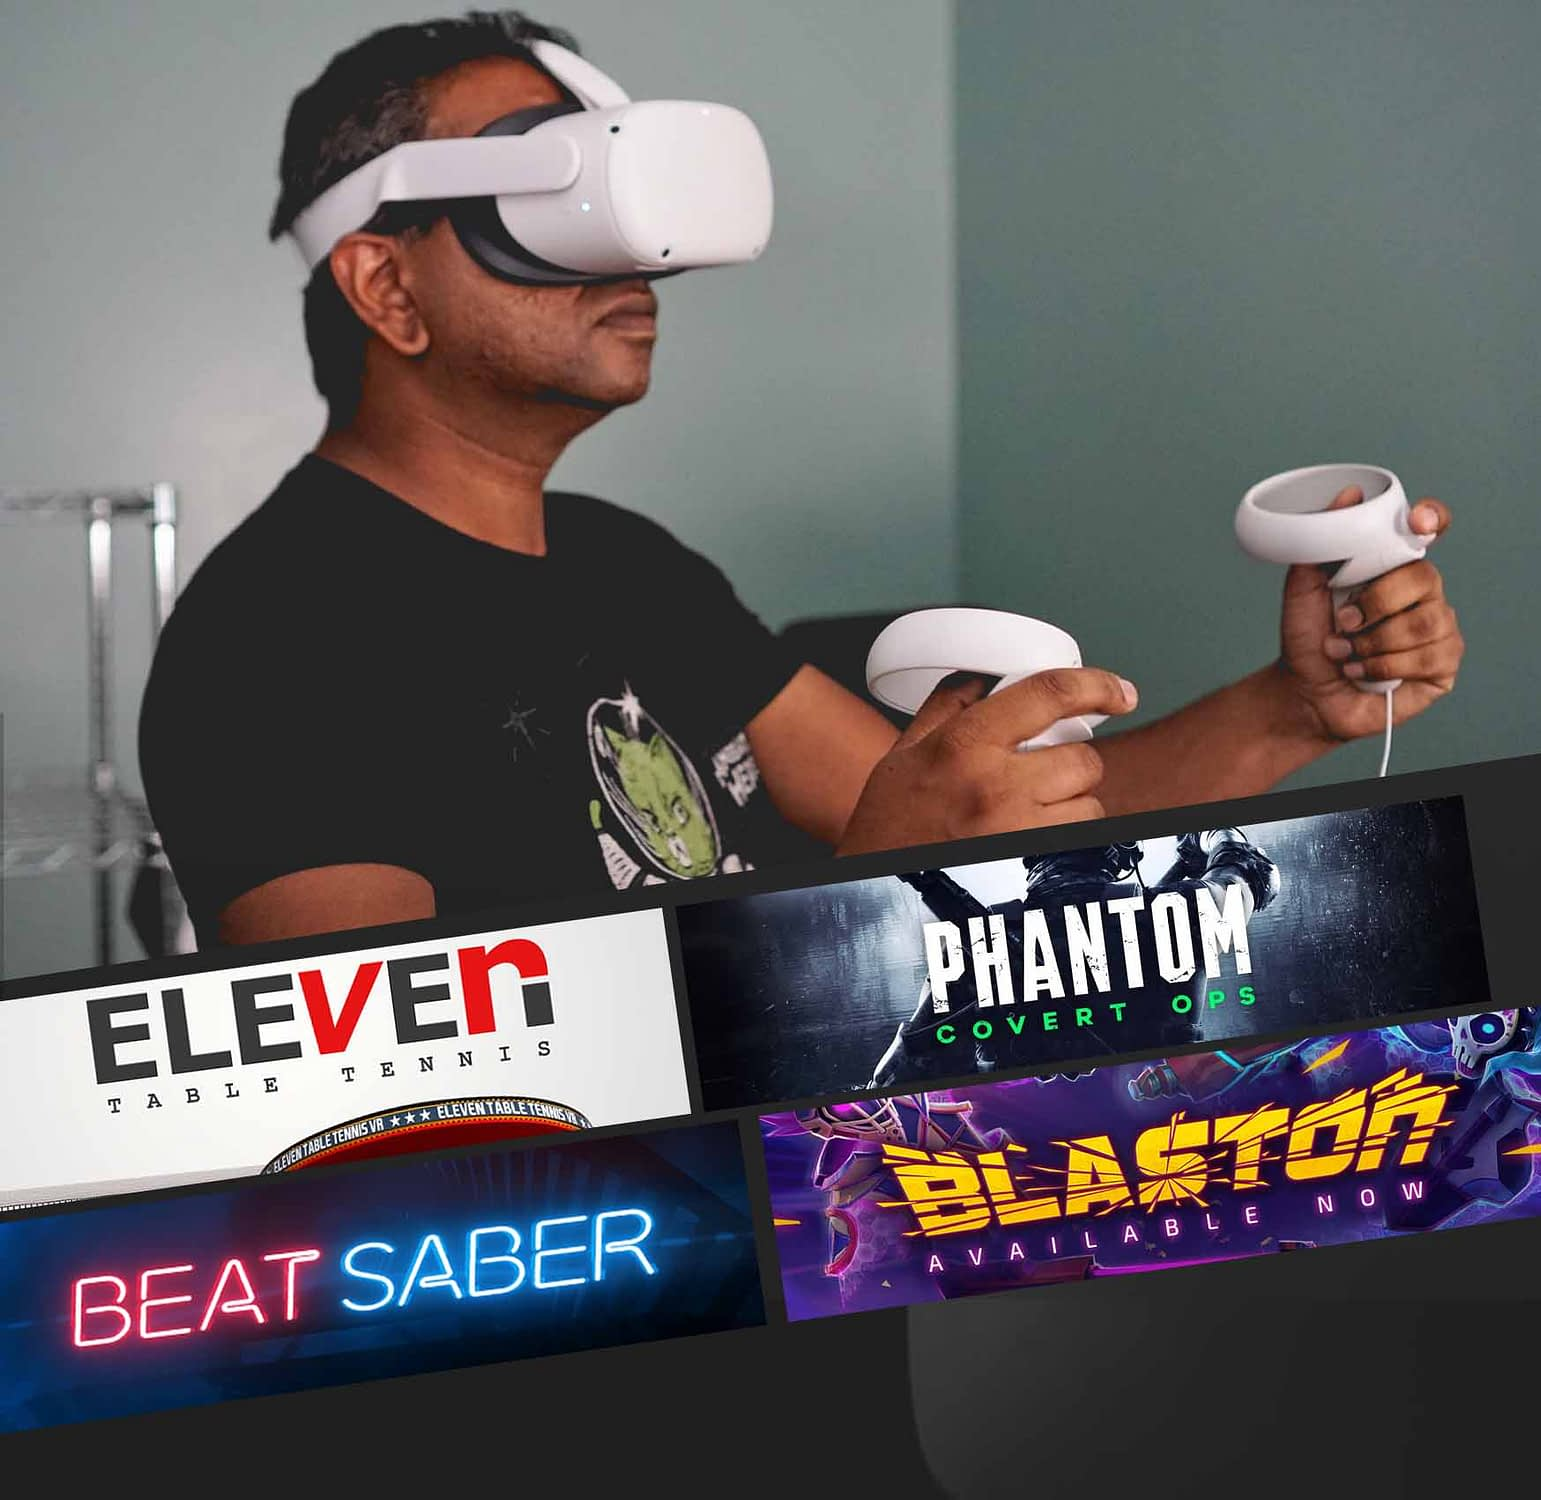 If you're not familiar with VR headsets, you might require a little assistance. Our well-trained expert rentals can help alleviate your stress if you feel you need help setting up the hardware. We can make renting an Oculus Quest easy. Permit our experts to see you through the process.